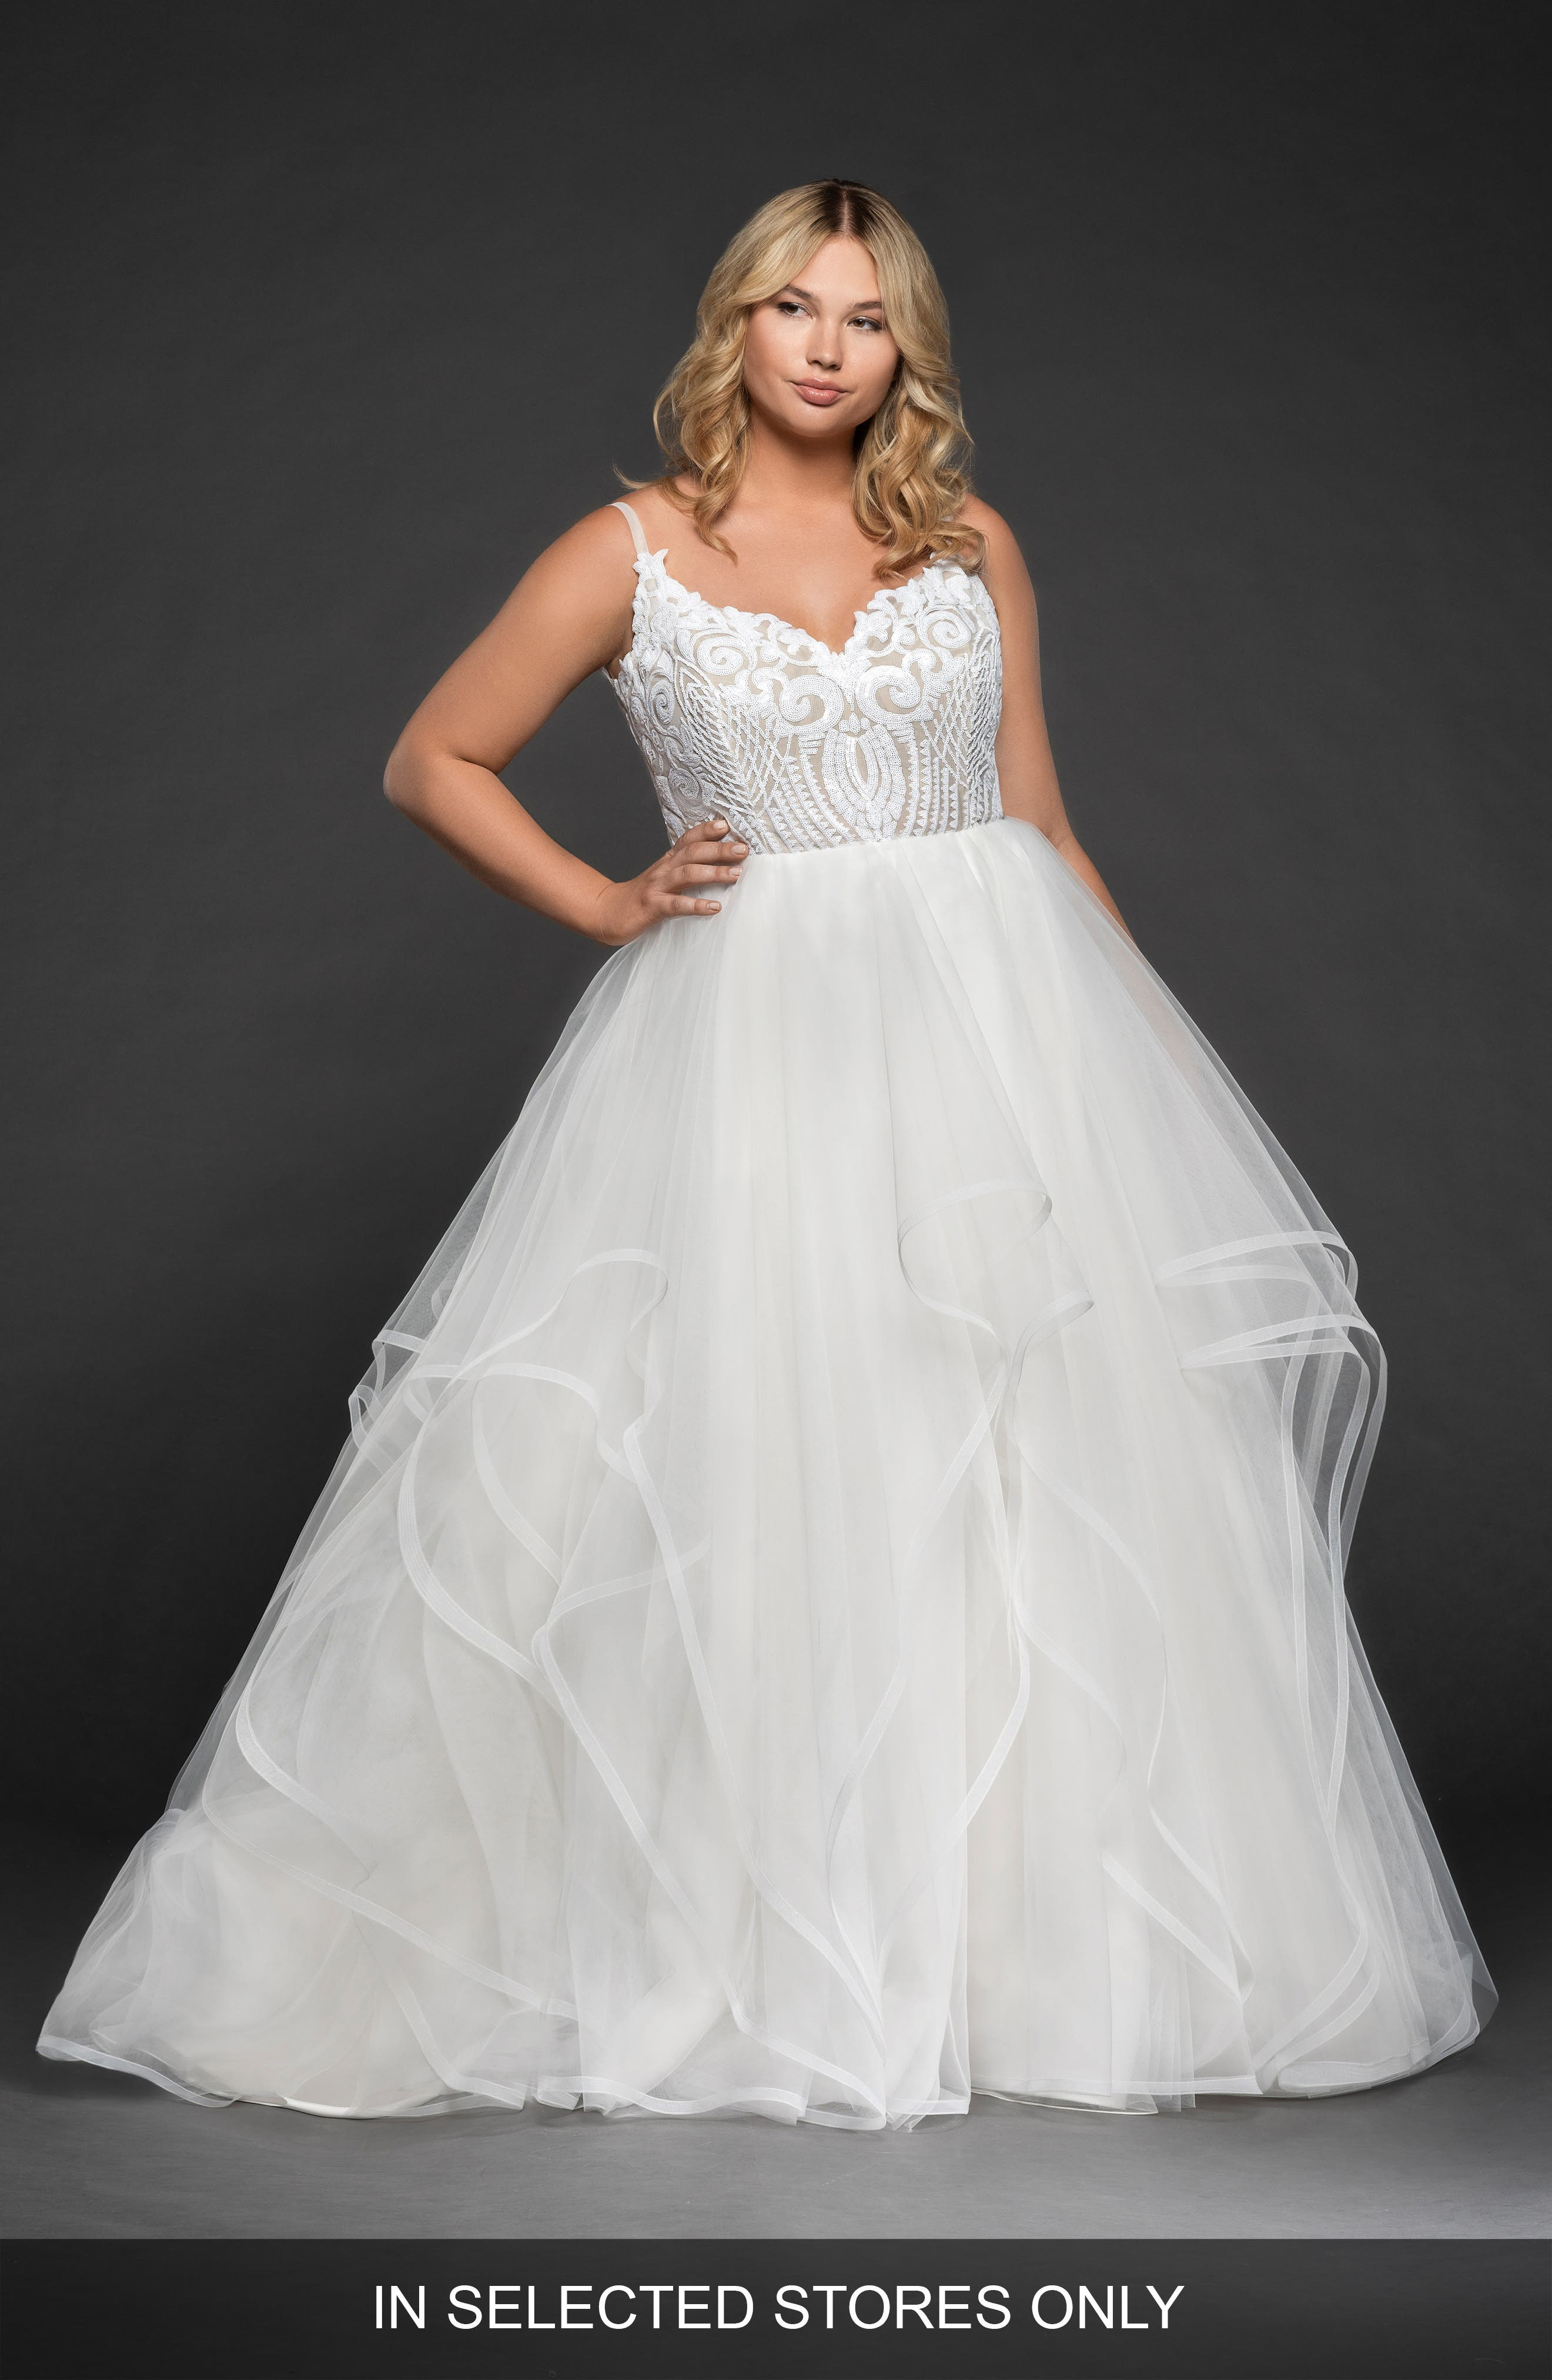 Pepper Draped Tulle Ballgown,                             Main thumbnail 1, color,                             SOLID IVORY